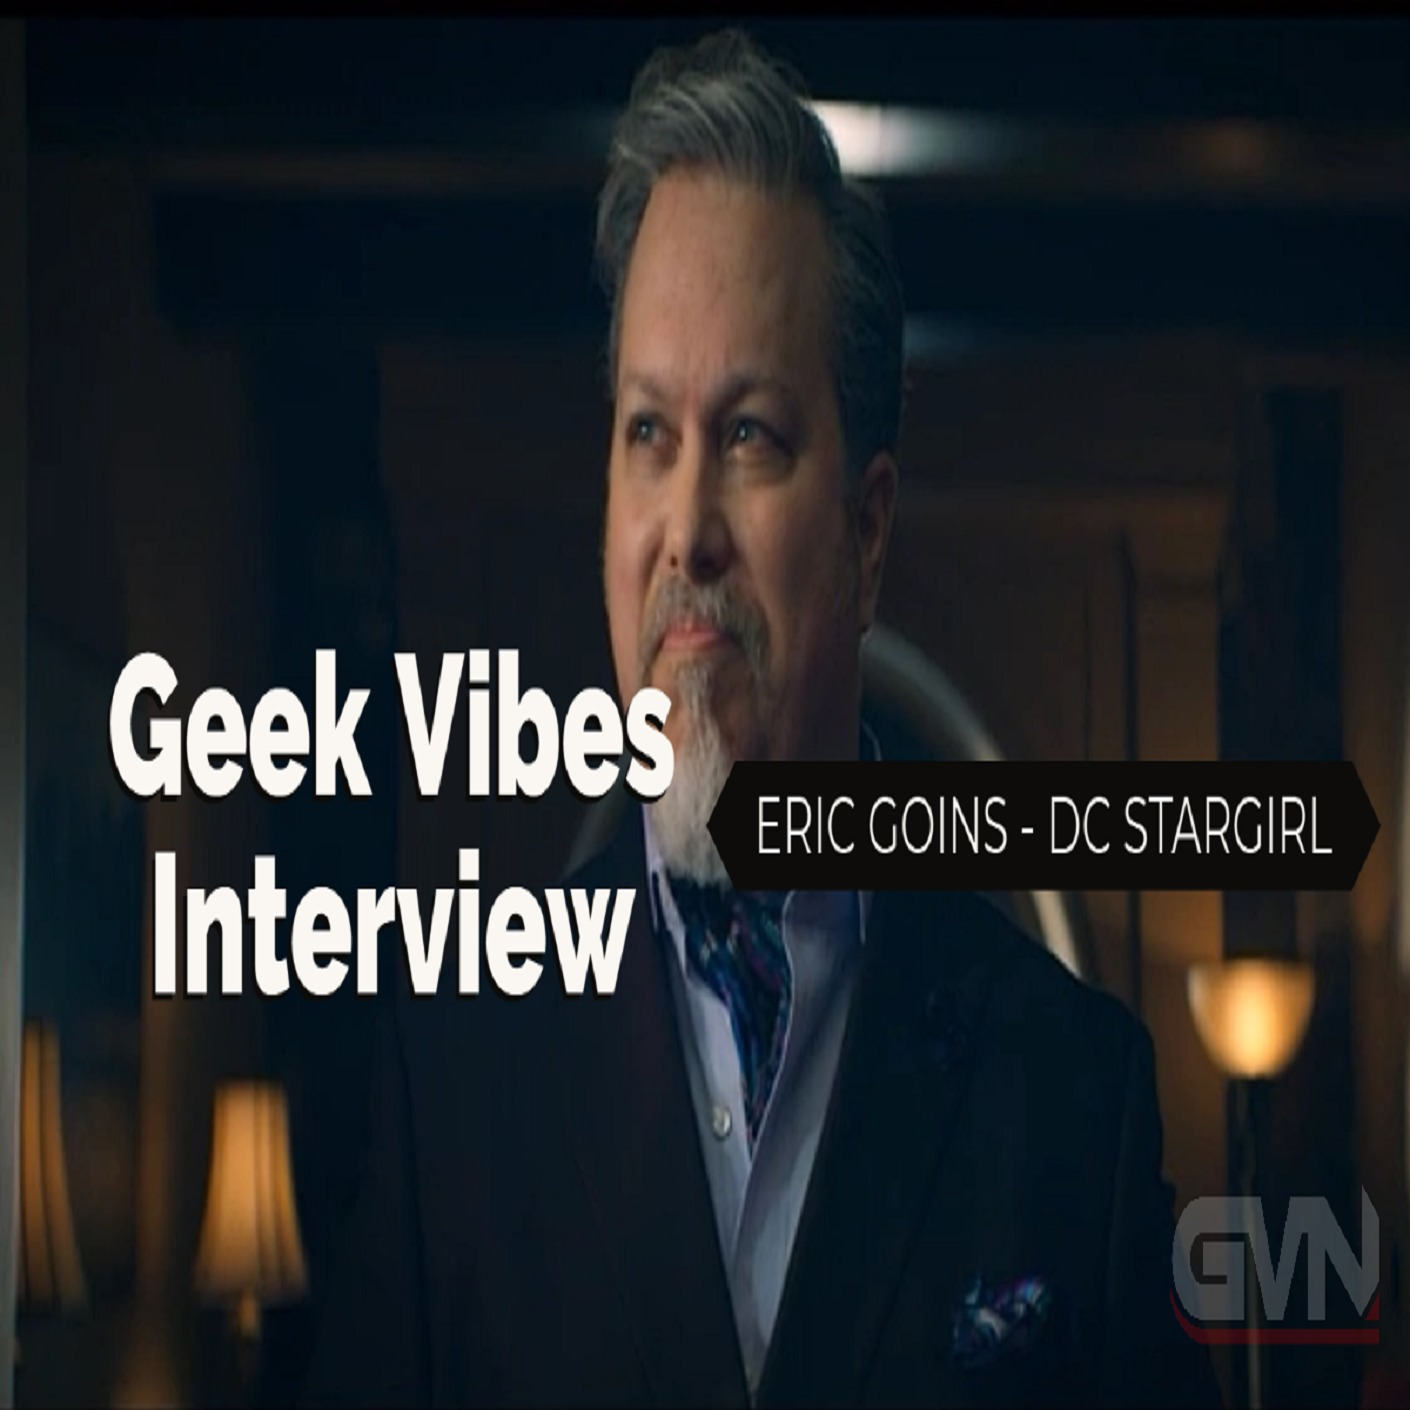 Geek Vibes Interview w/ Eric Goins